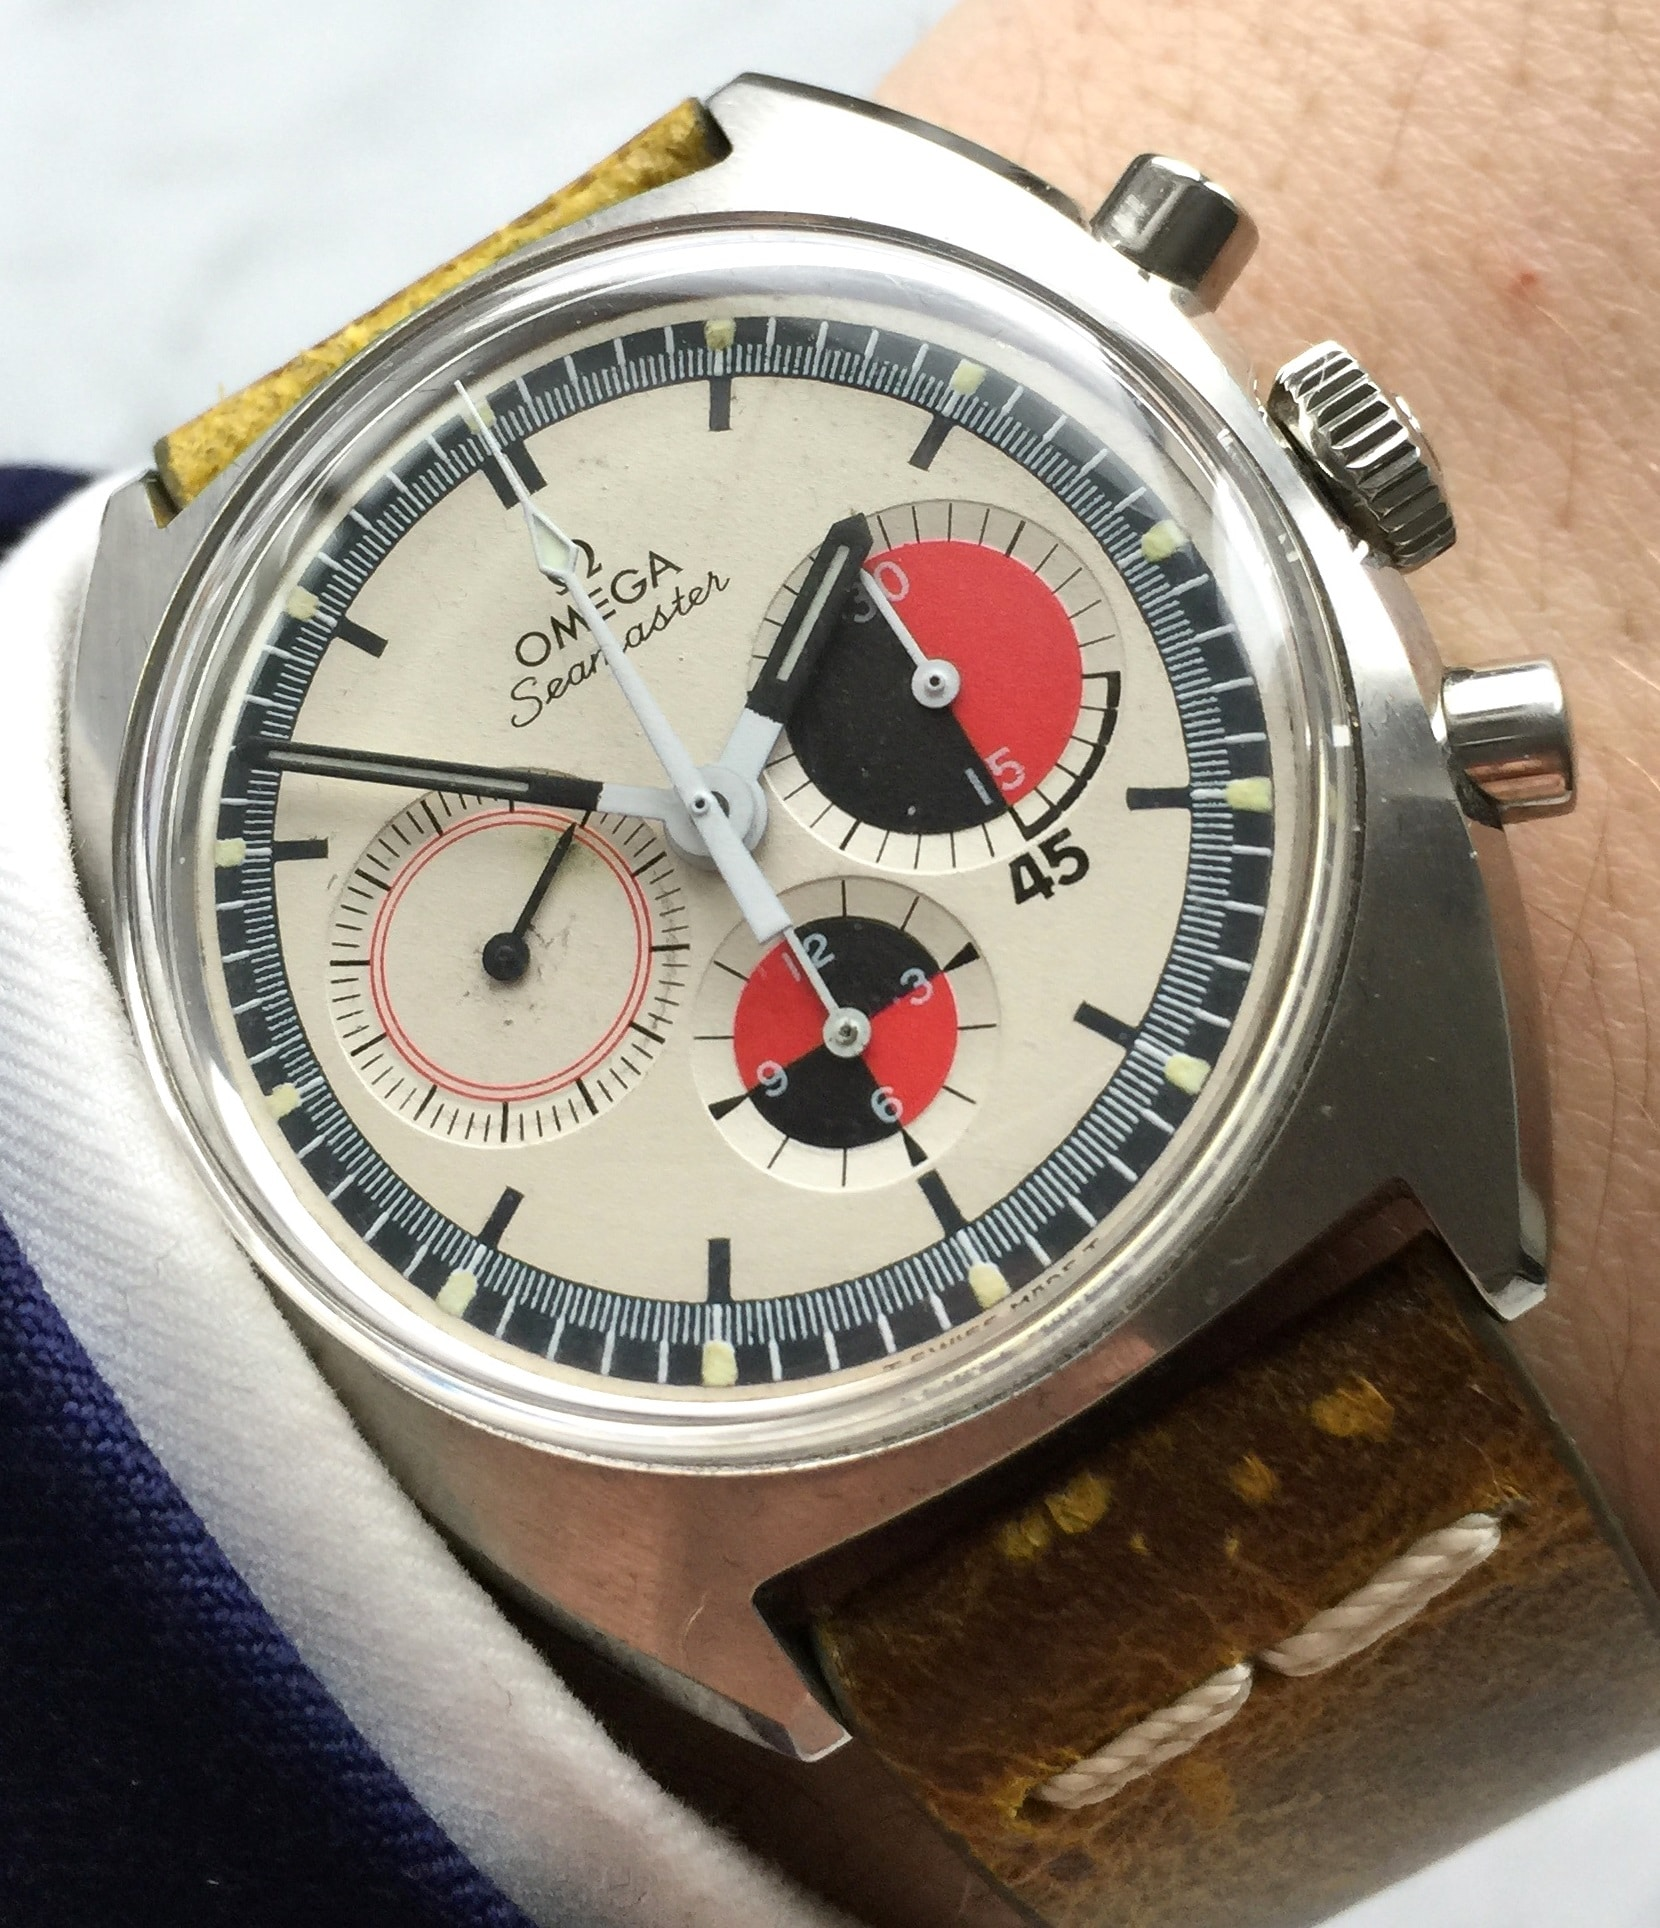 Omega Seamaster Soccer Vintage Chronograph with green strap